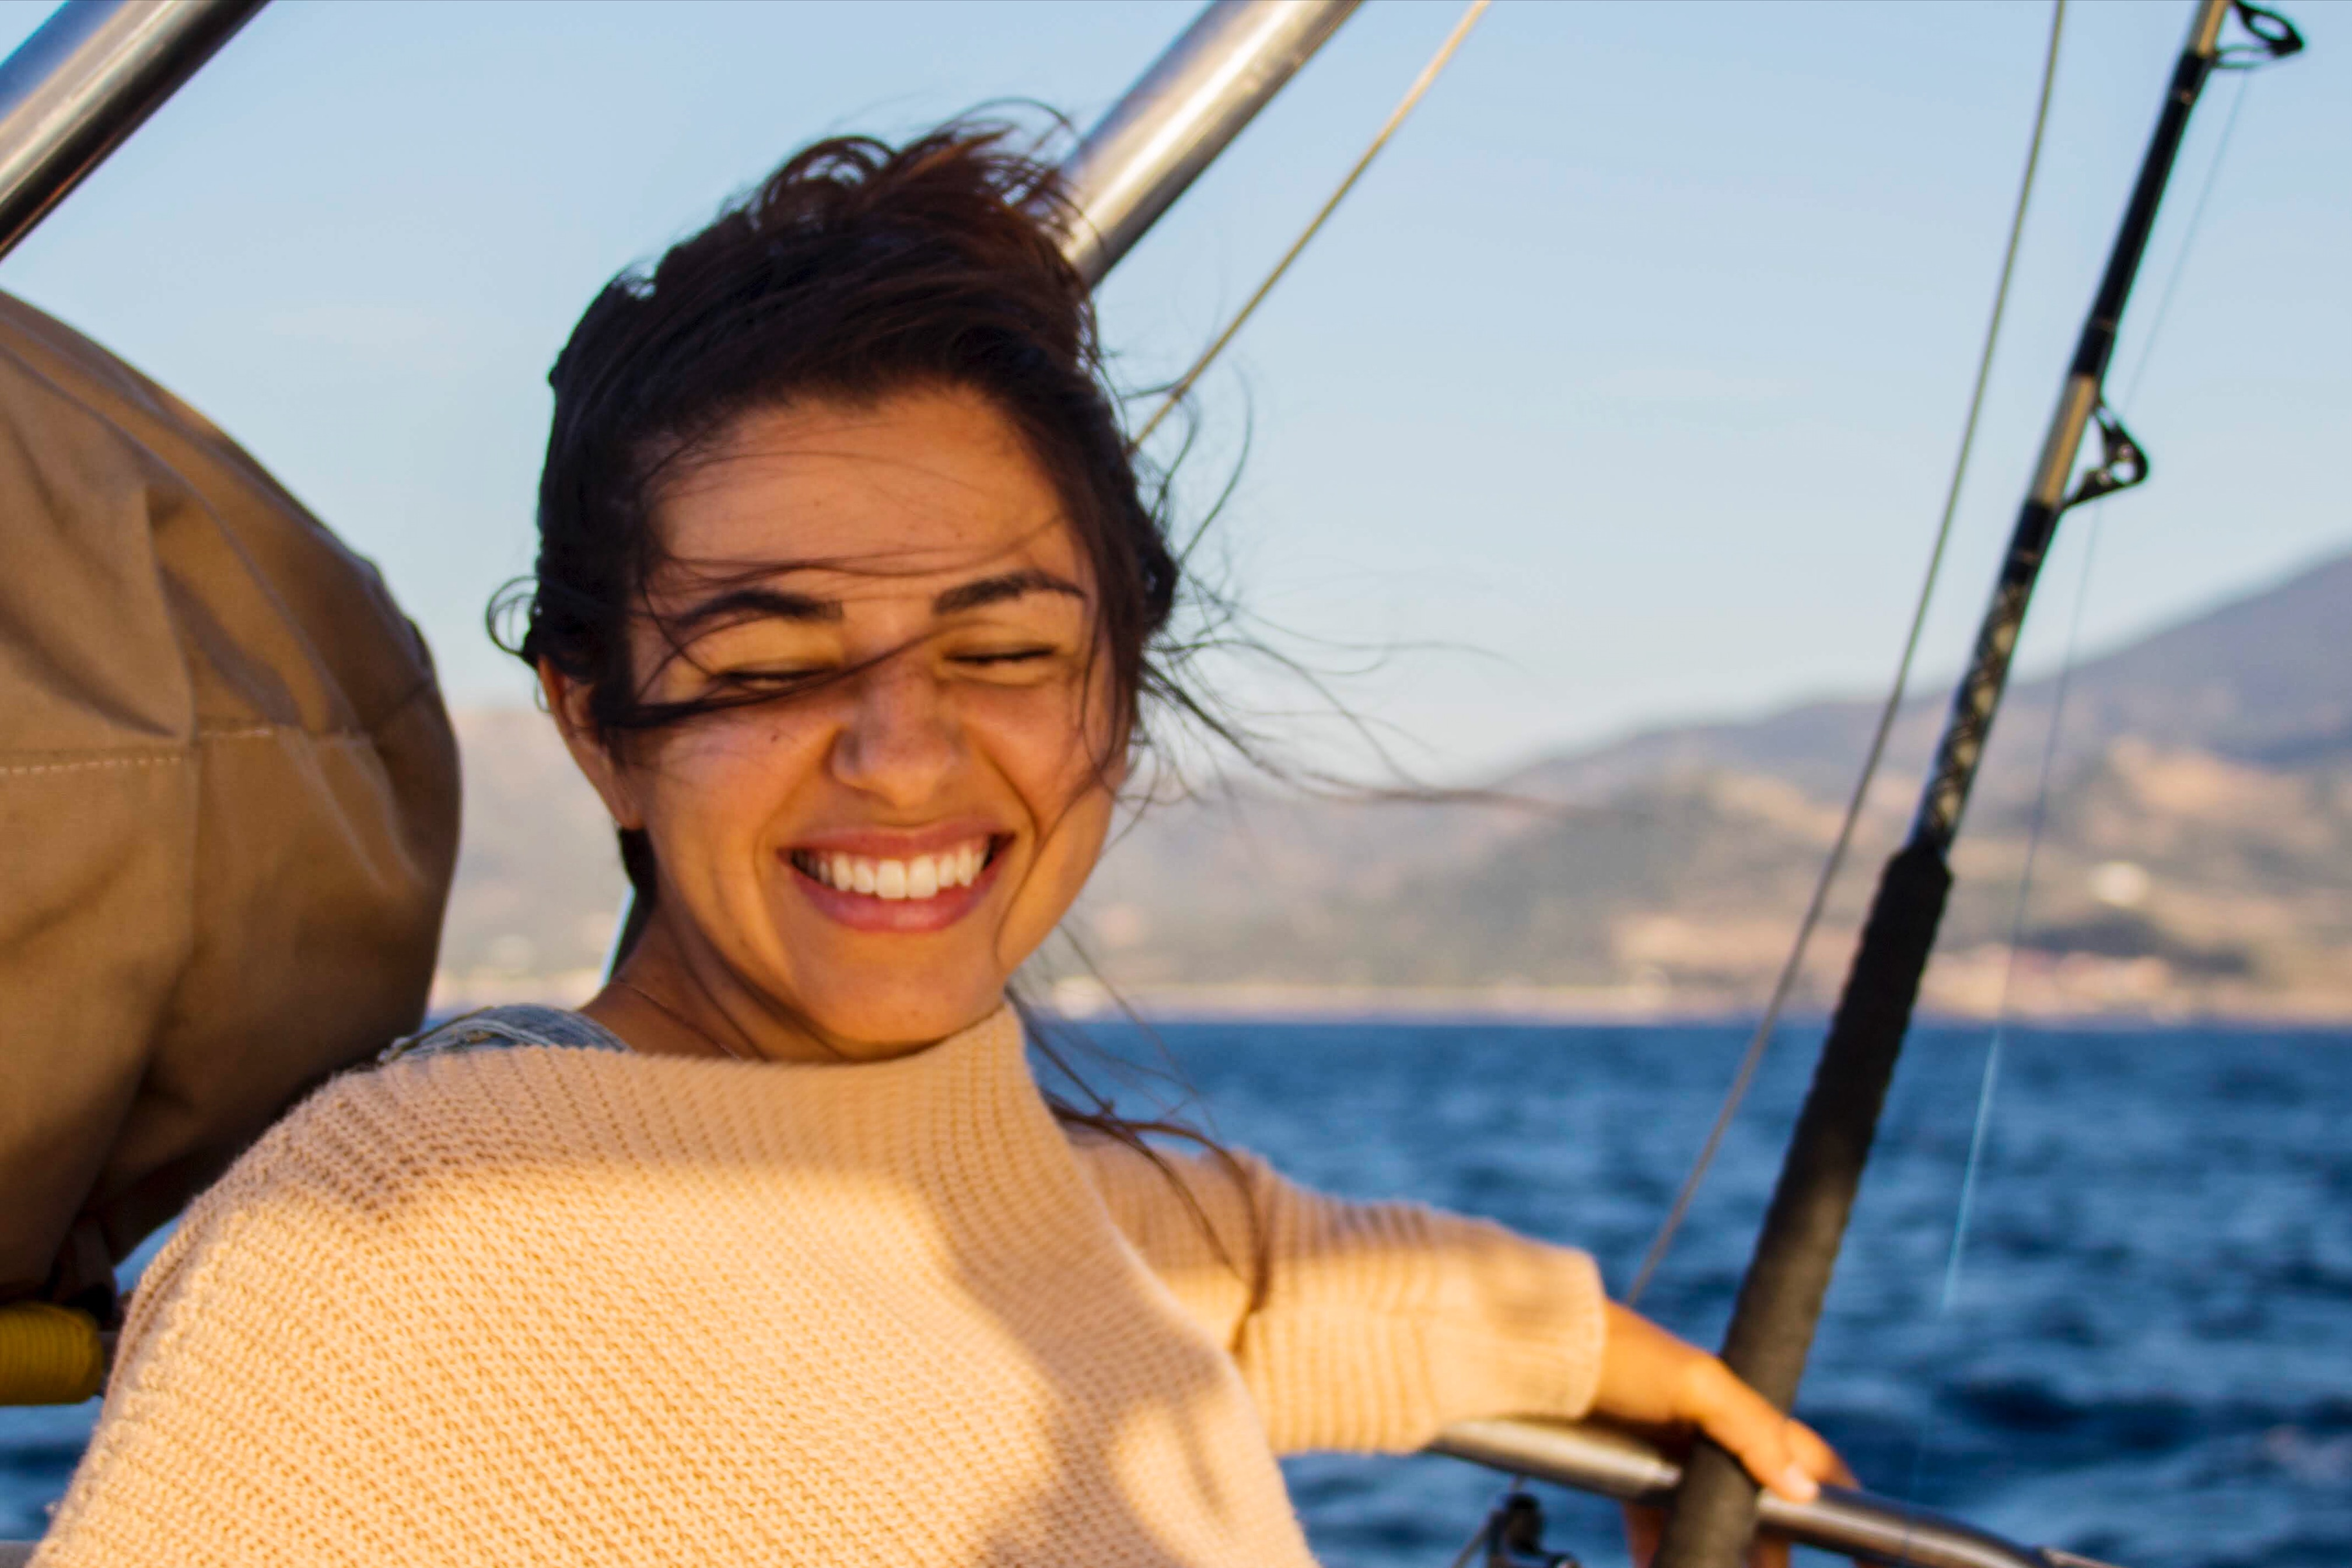 Remote worker on sailboat in Lesbos, Greece on a windy day